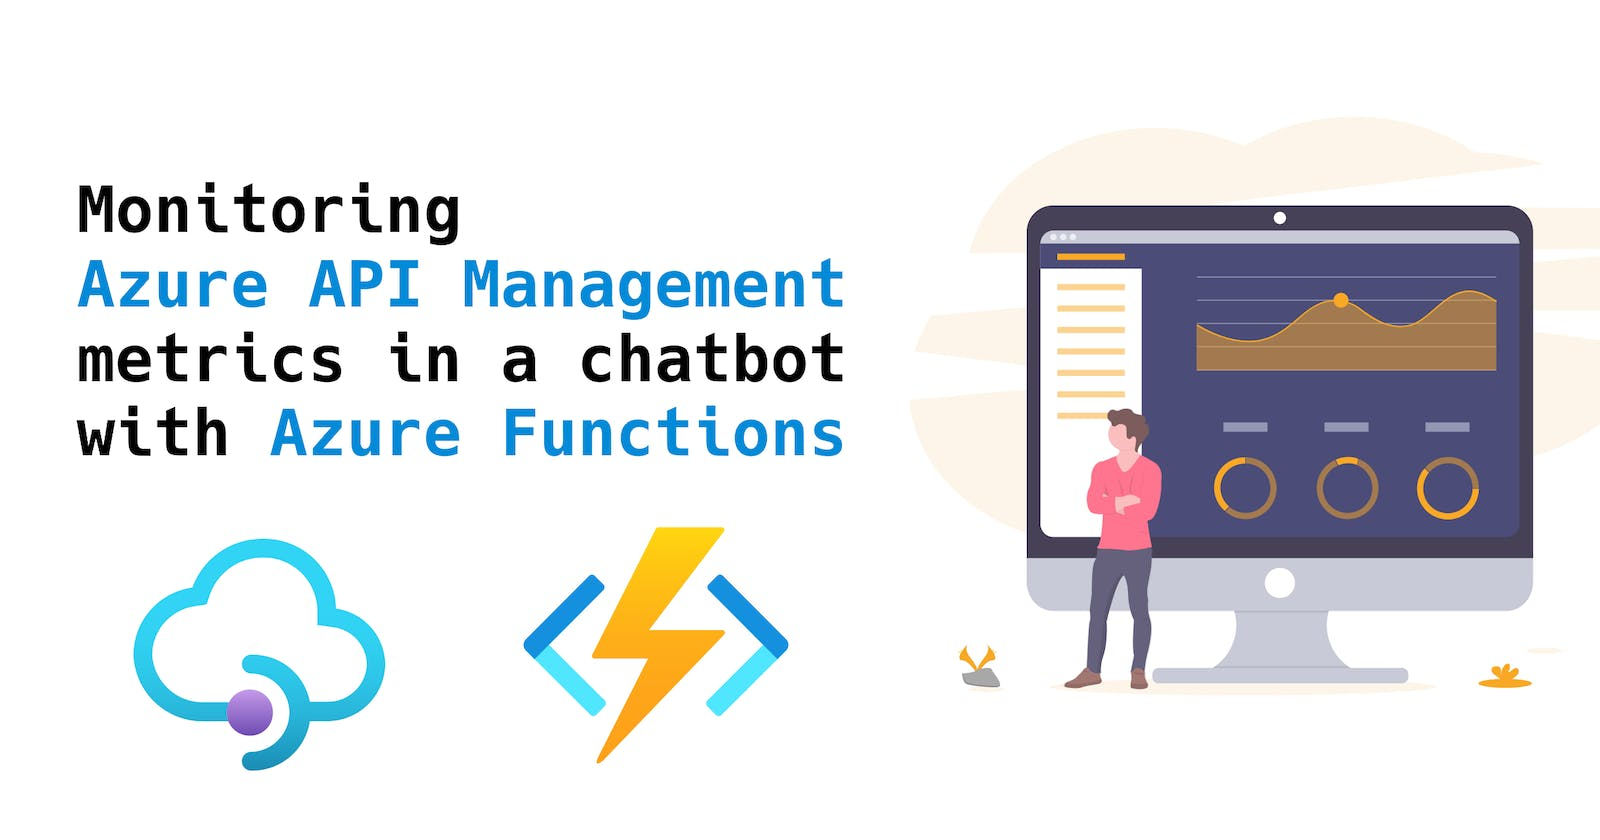 Monitoring Azure API Management metrics in a chatbot with Azure Functions